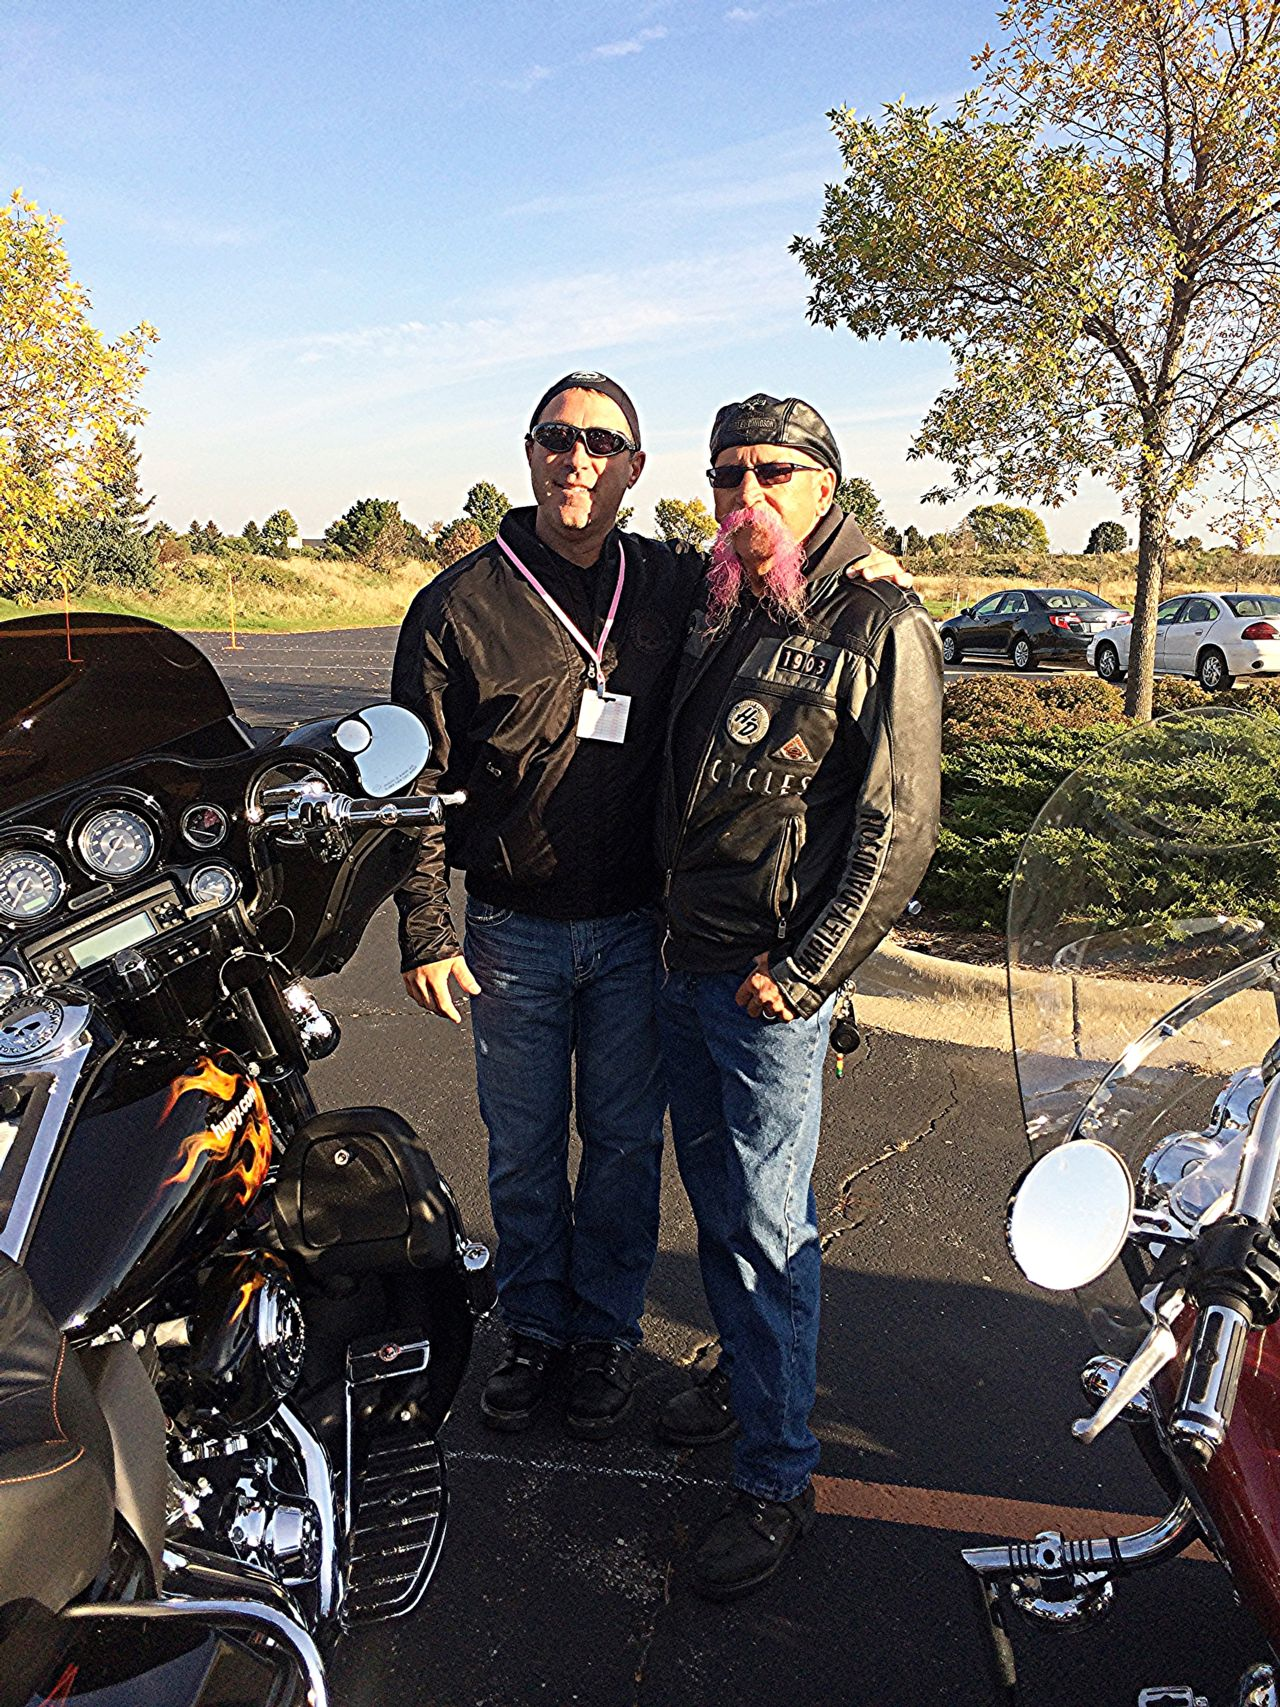 Attorney Jason Abraham riding for Breast Cancer Research